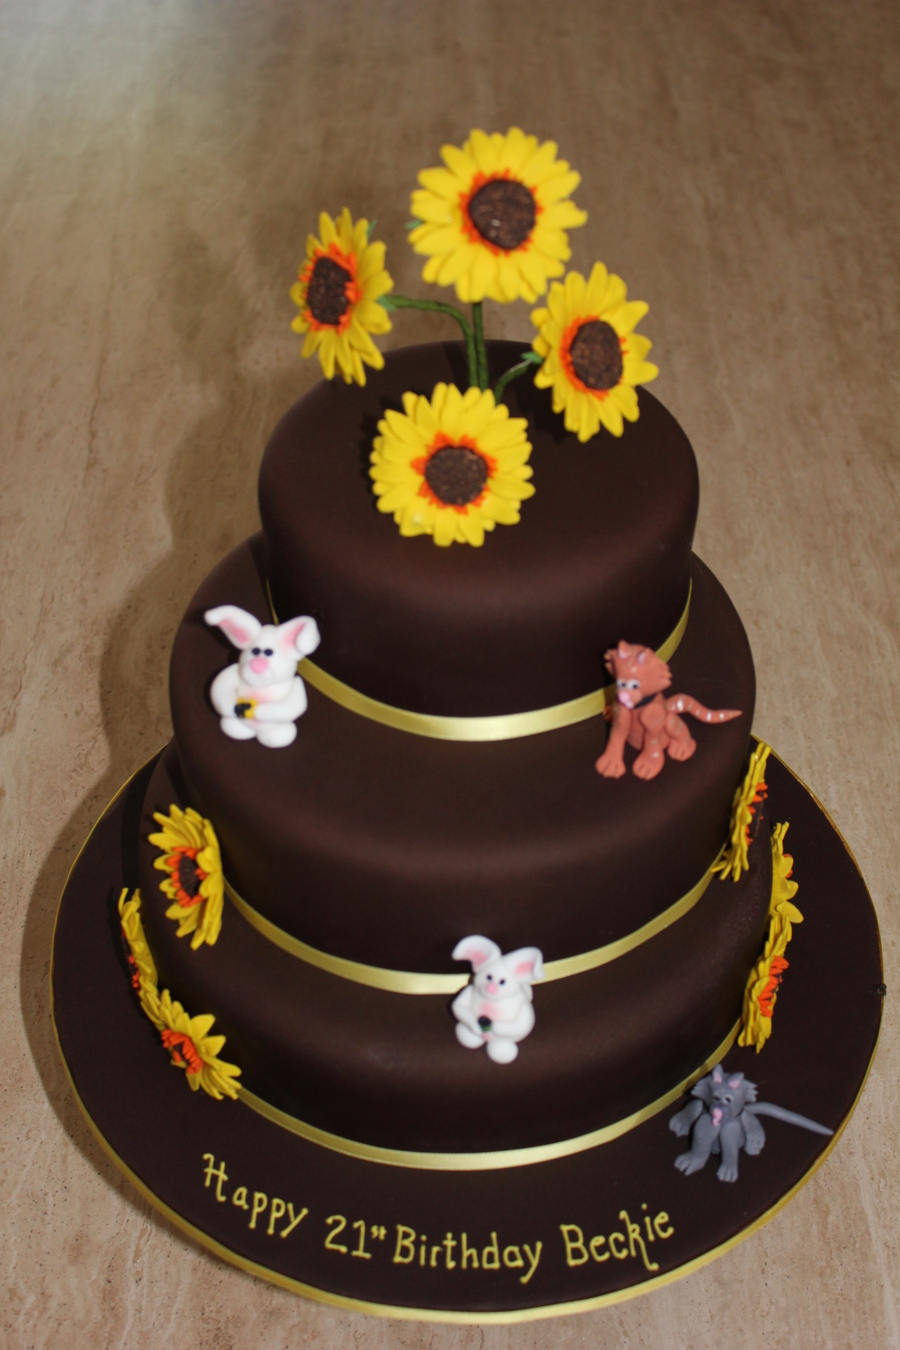 Sunflowers Cats And Rabbits 3 Tier Chocolate Cake On Central